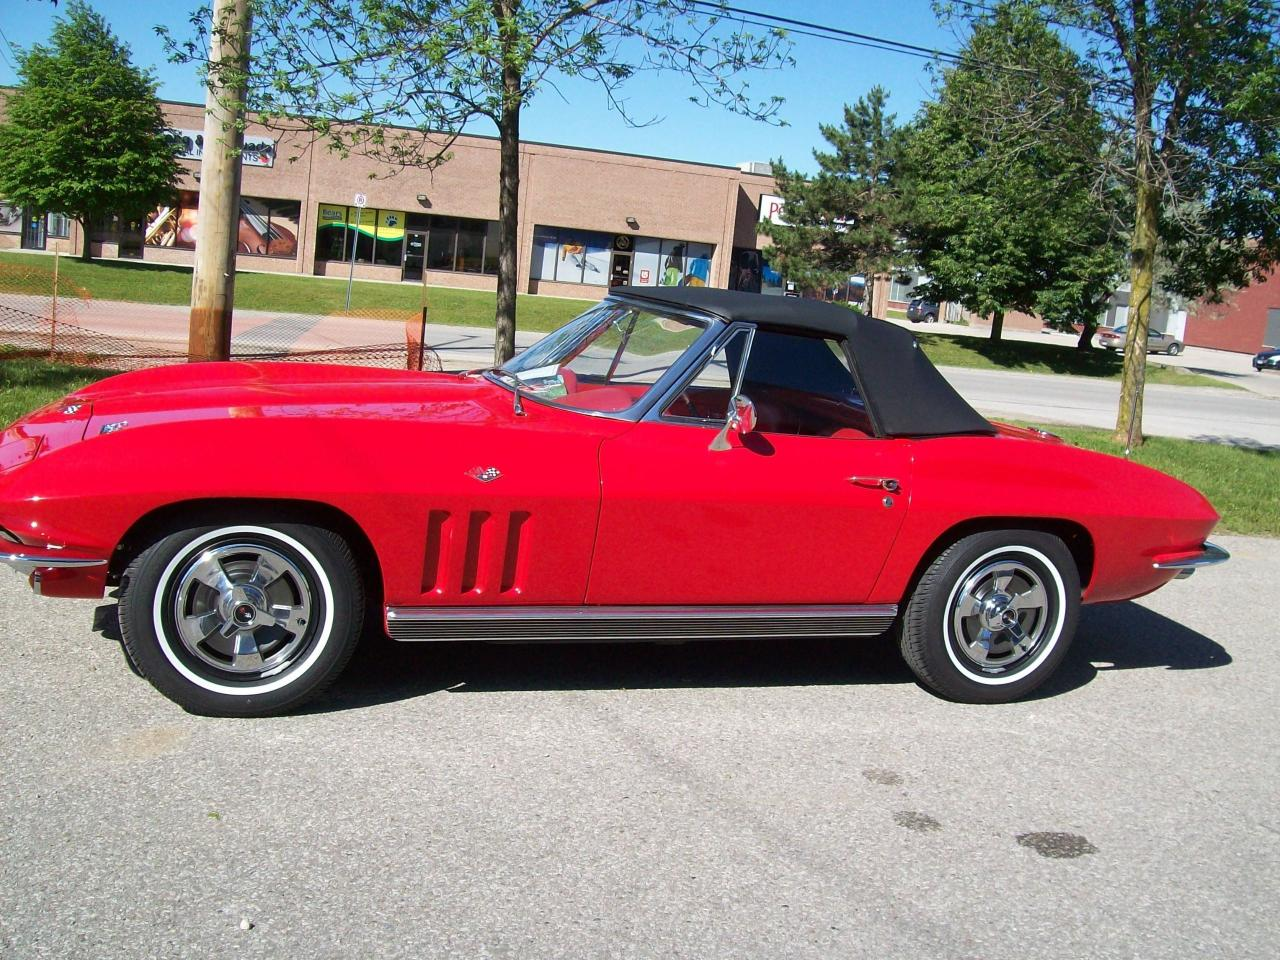 Used 1966 Chevrolet Corvette for Sale in Guelph, Ontario | Carpages.ca